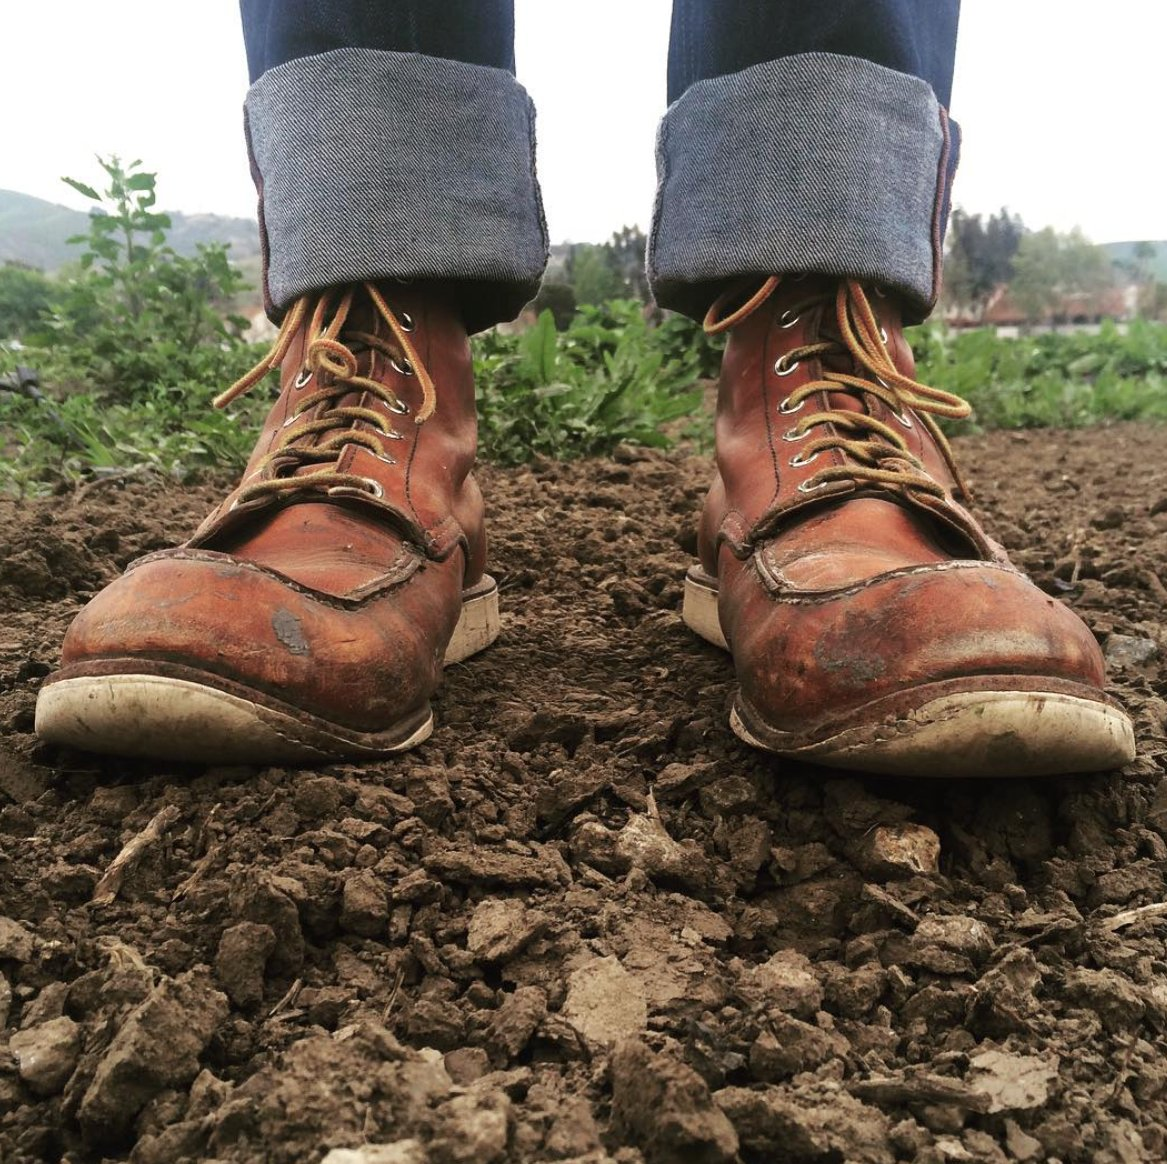 After planting season, time for a resole. #redwingheritage #875